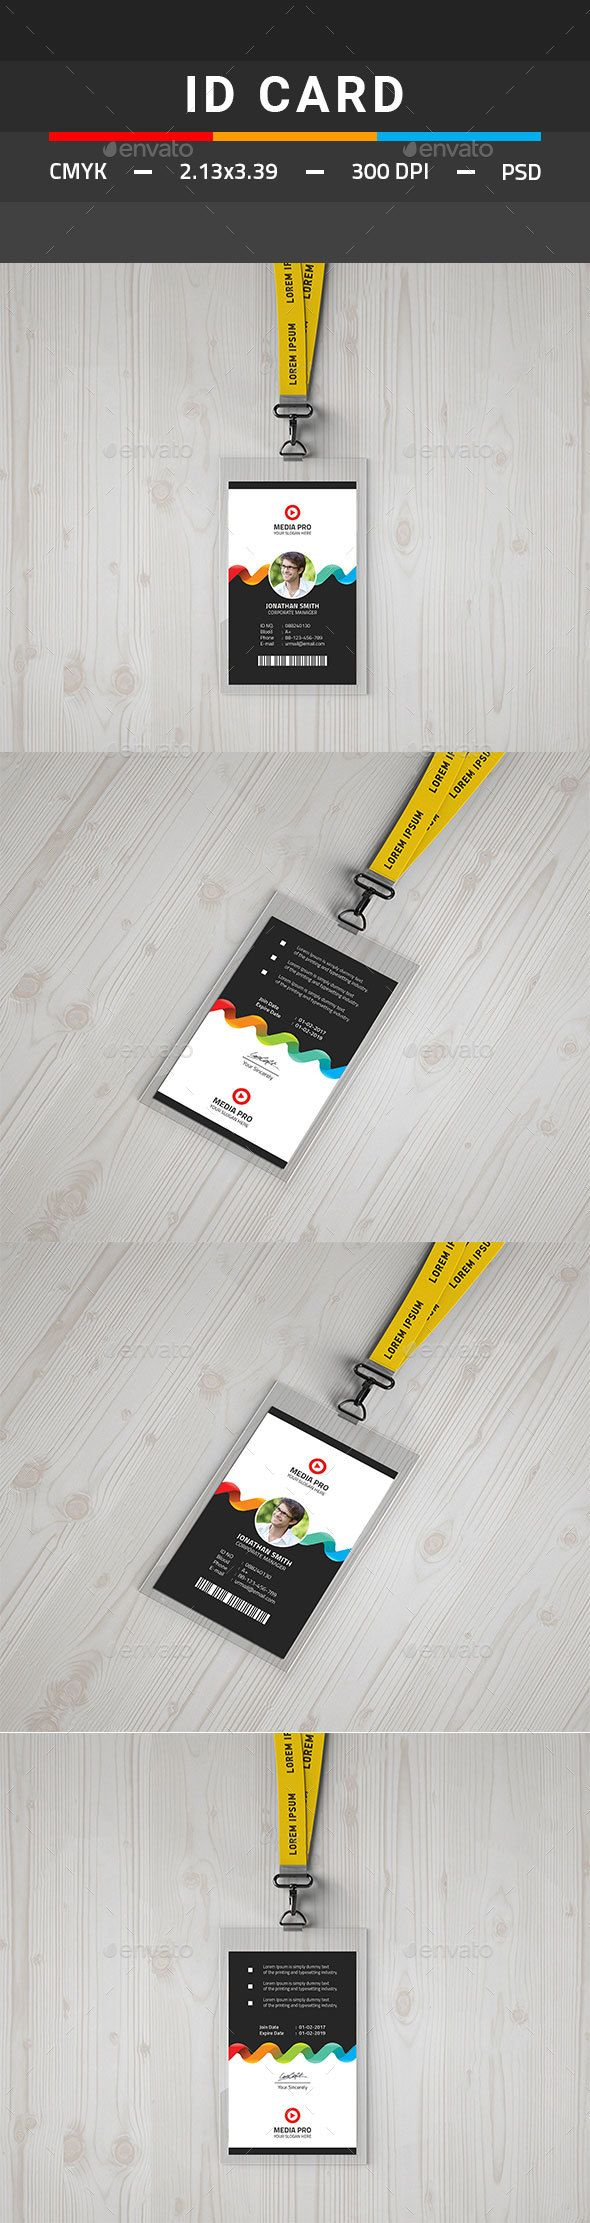 IDCard - Miscellaneous Print Templates | ID card Design | Pinterest ...